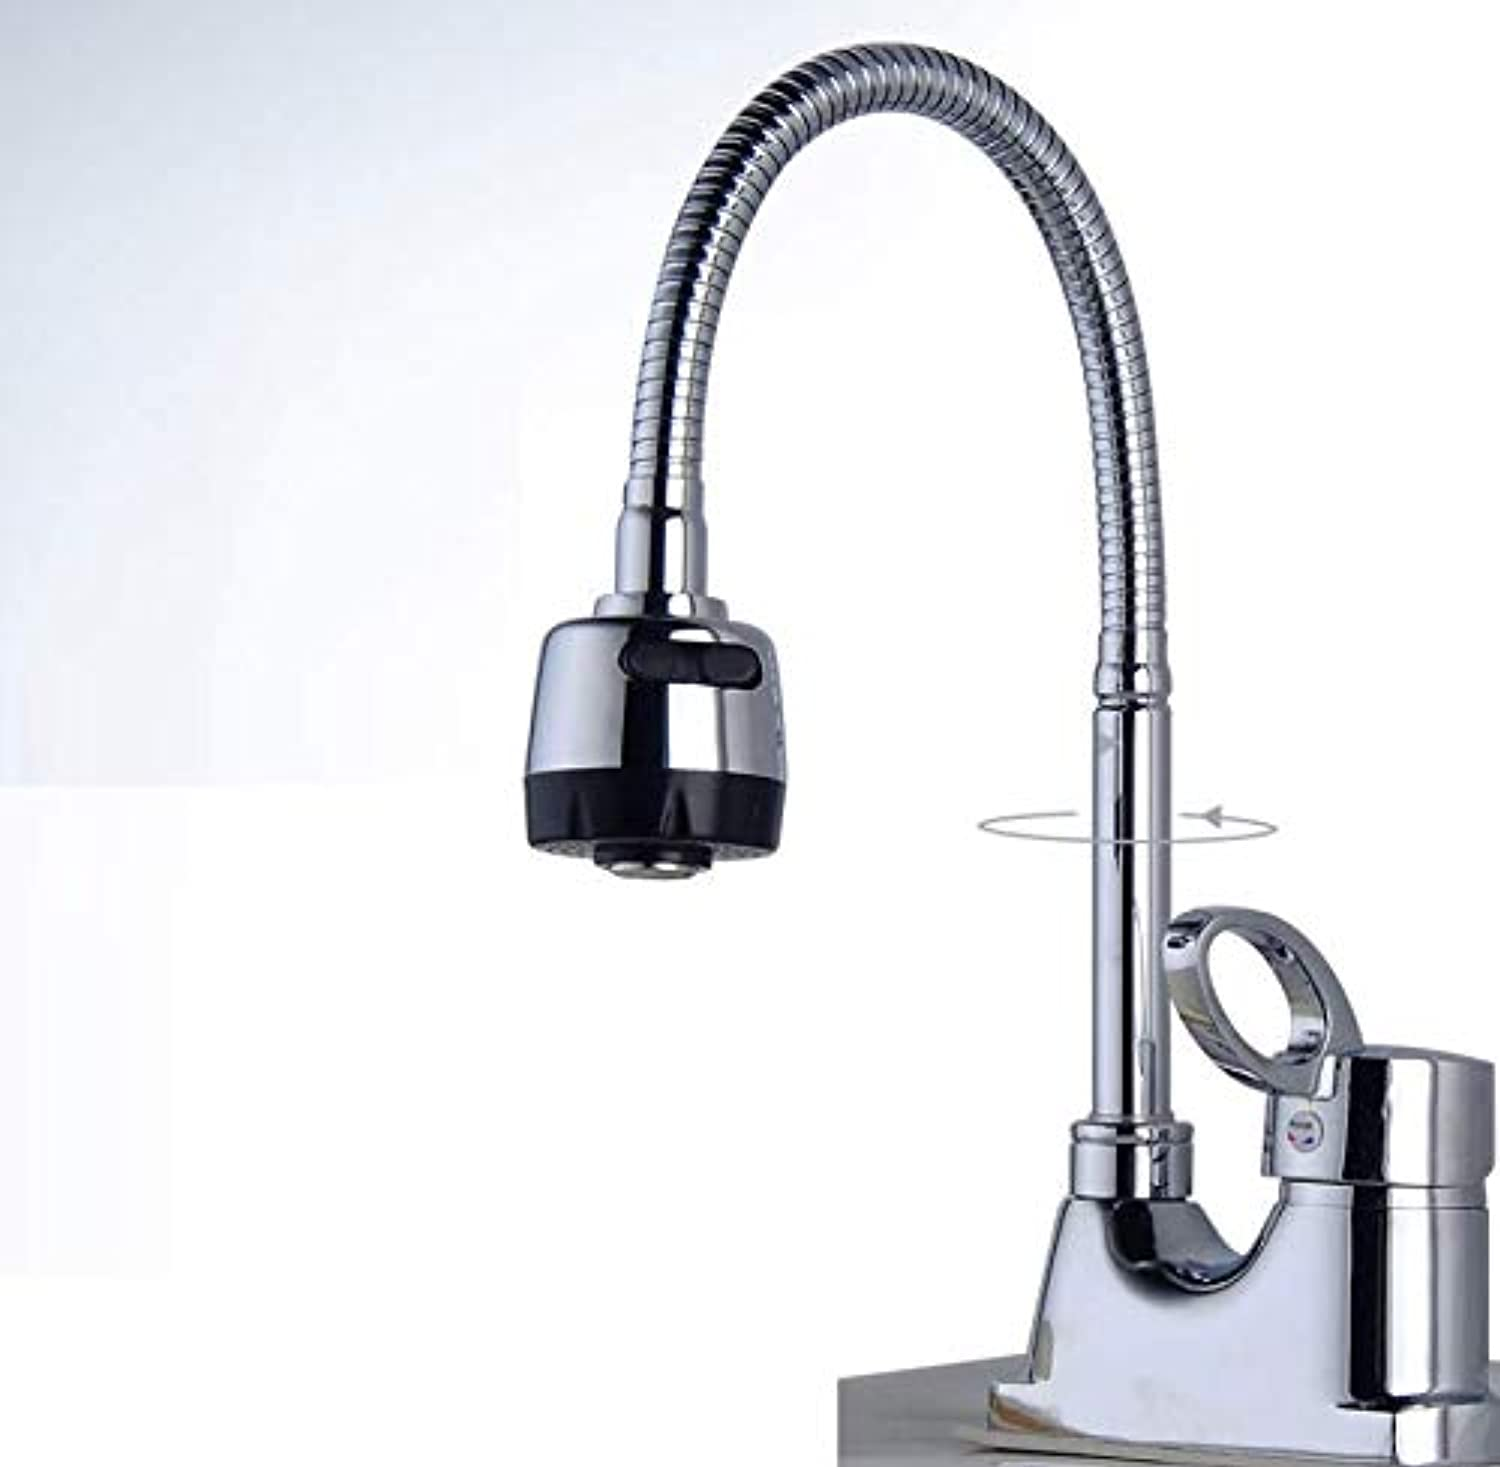 Bathroom Faucet Double Hole Basin Faucet All Copper Body redatable Hot and Cold Water Faucet Double Hole Three Hole Wash Basin Basin Basin Faucet